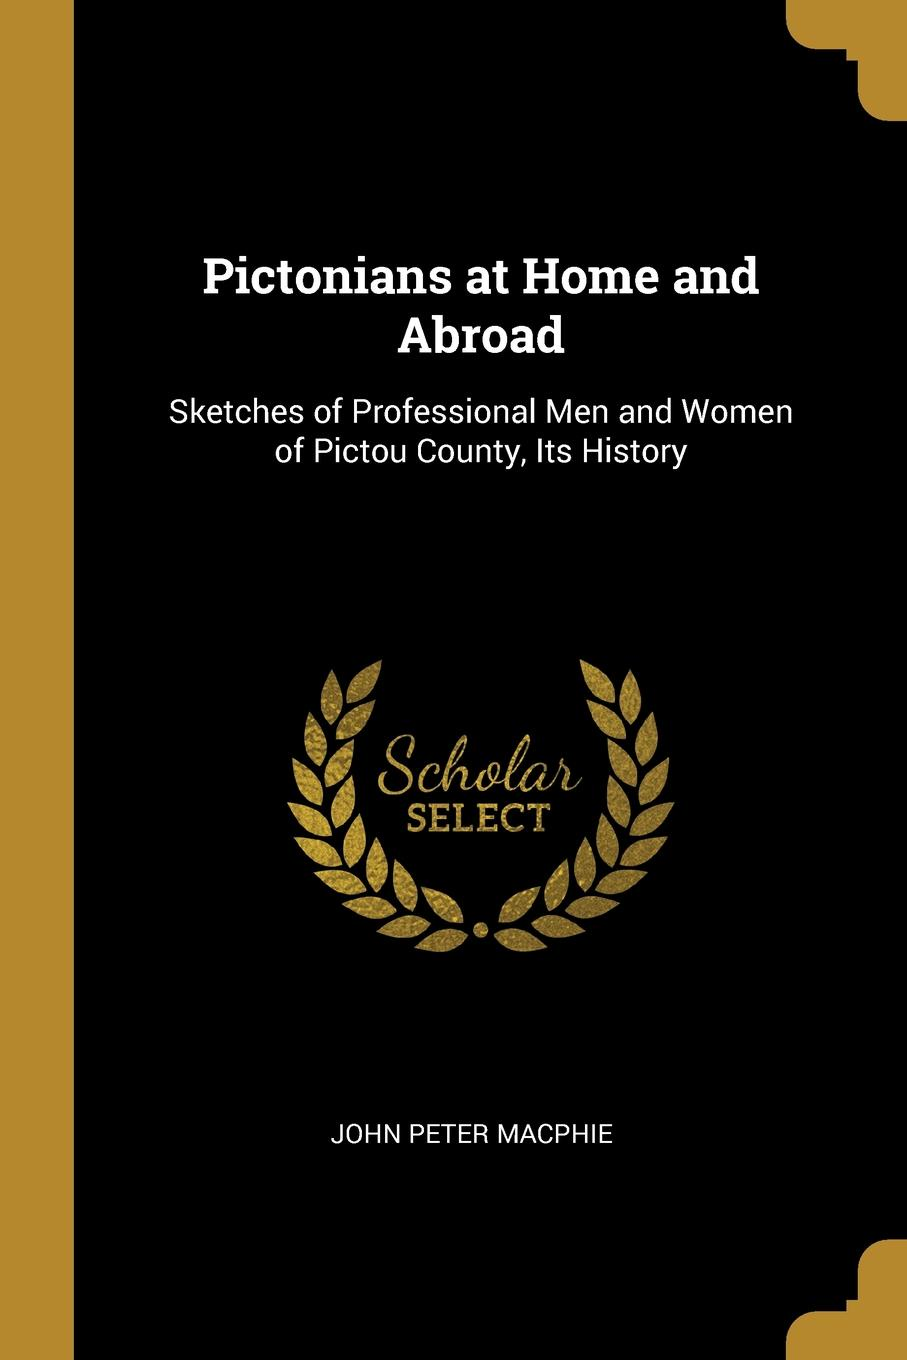 John Peter MacPhie Pictonians at Home and Abroad. Sketches of Professional Men and Women of Pictou County, Its History